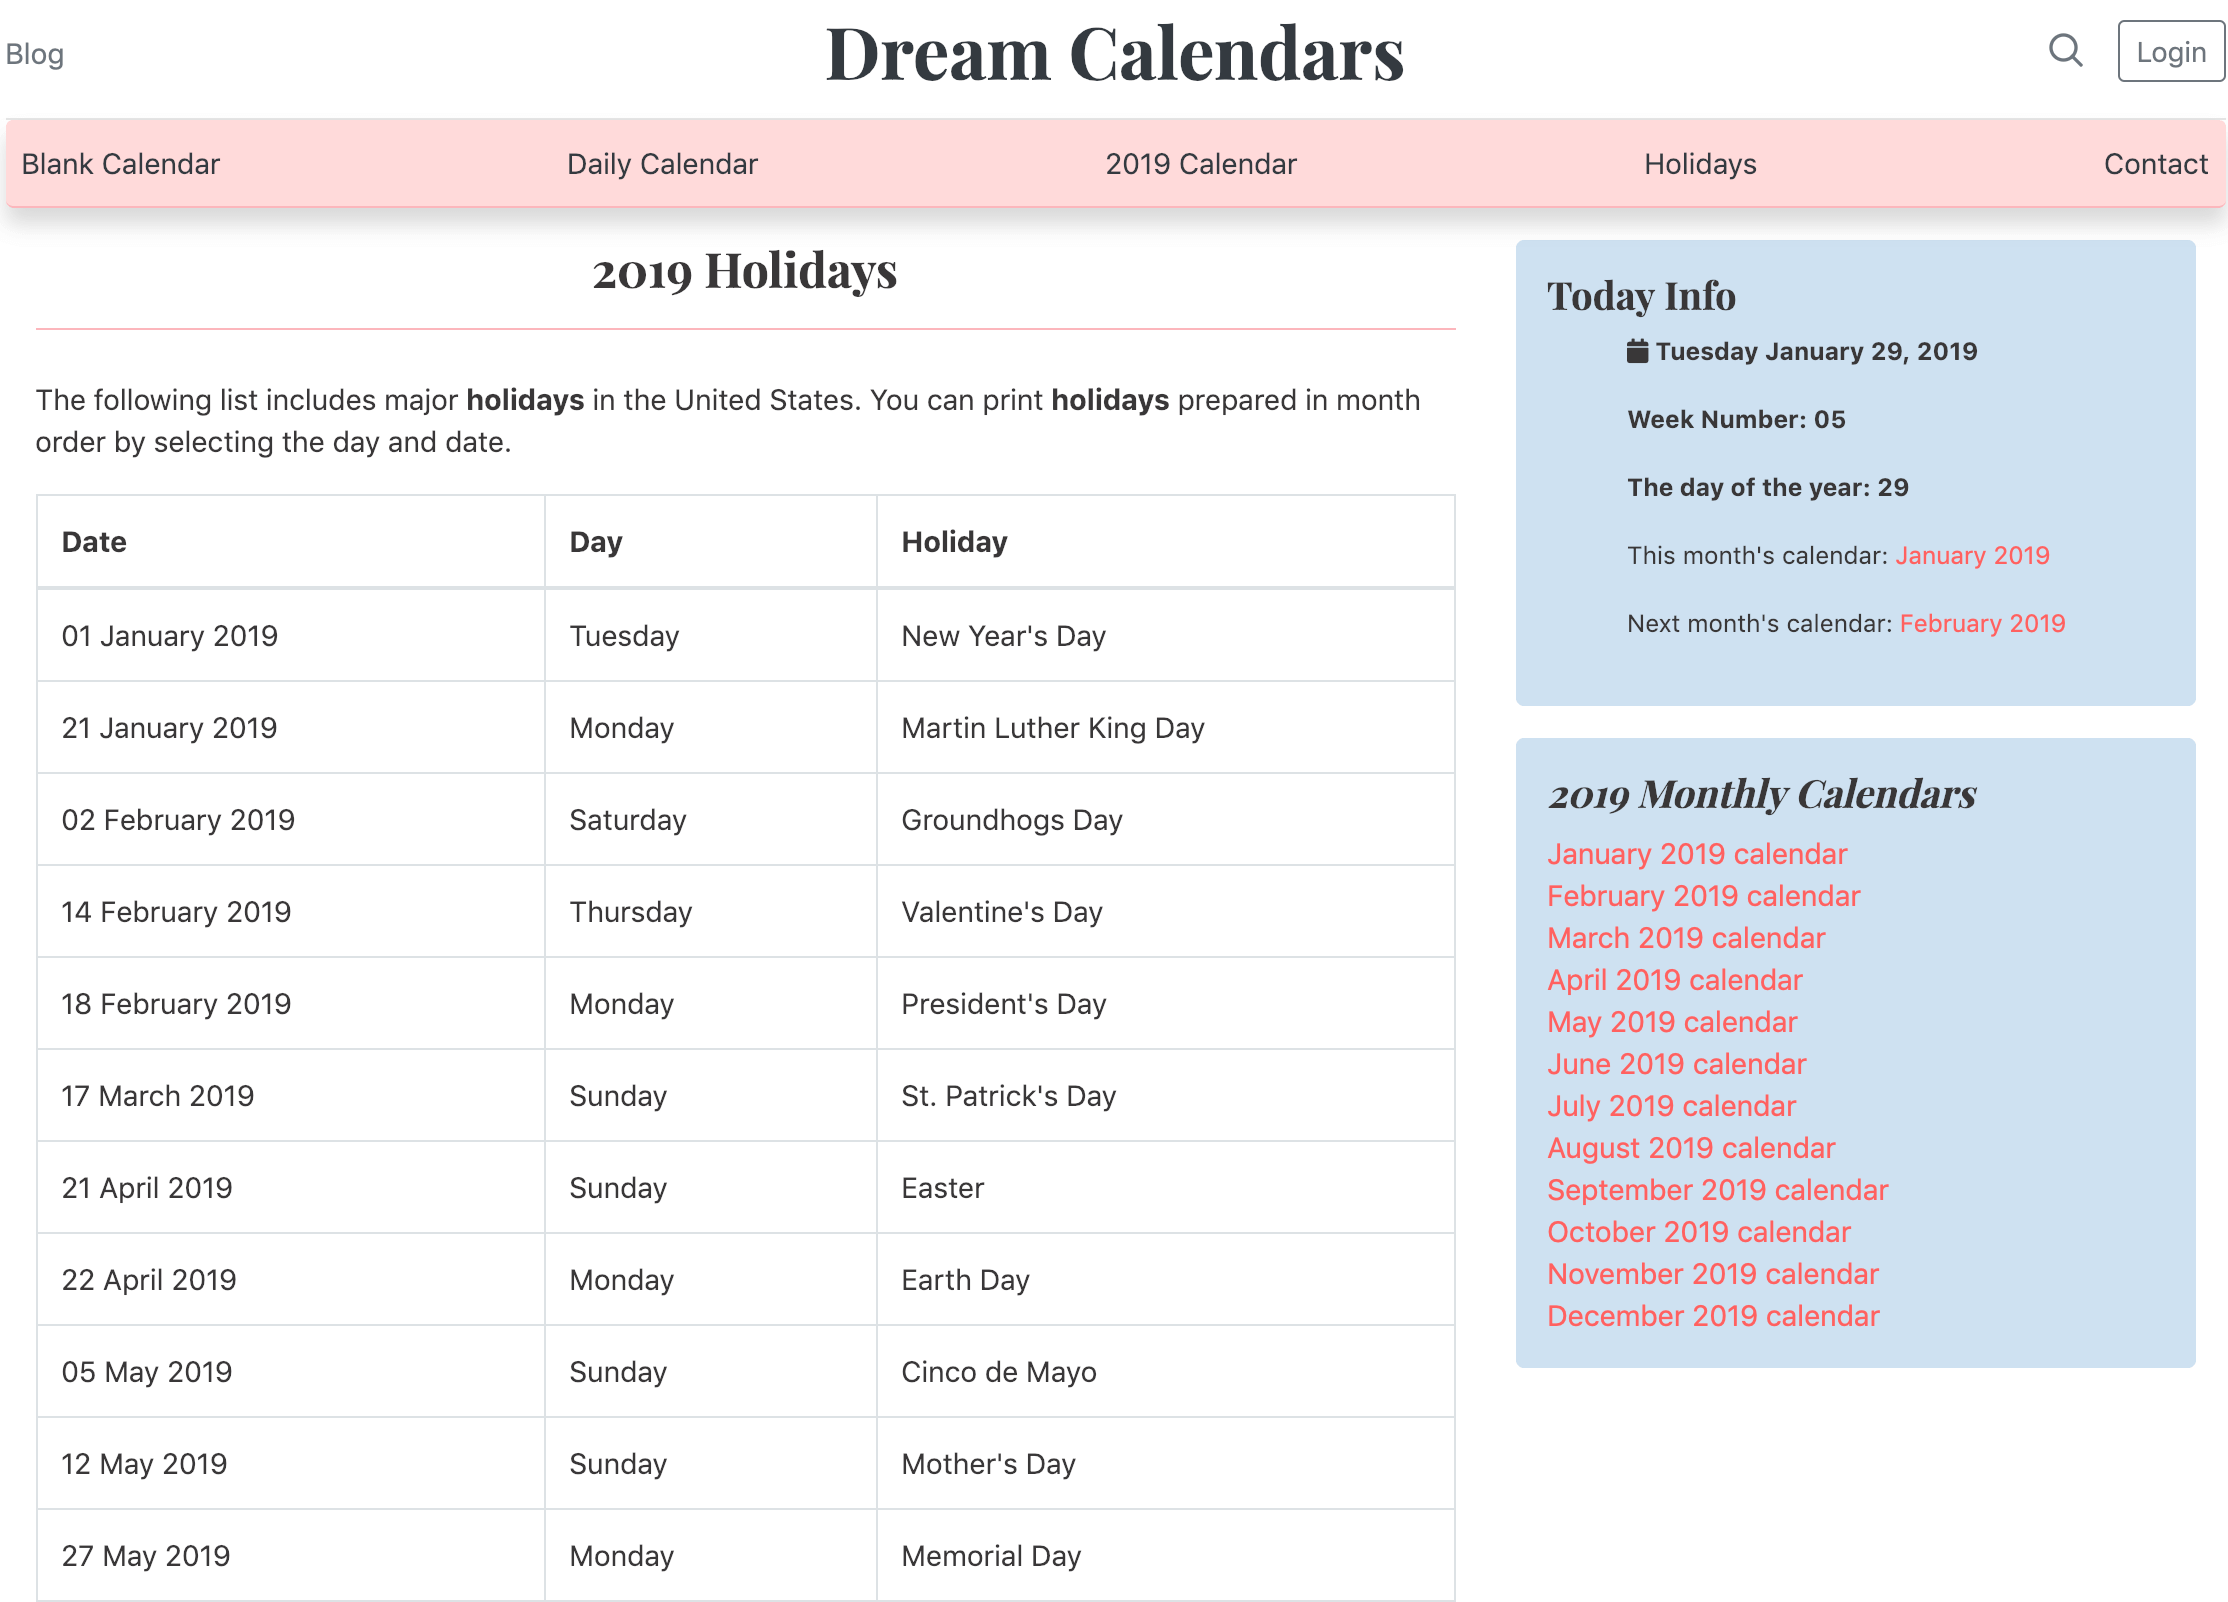 List of 2019 Holidays (US)